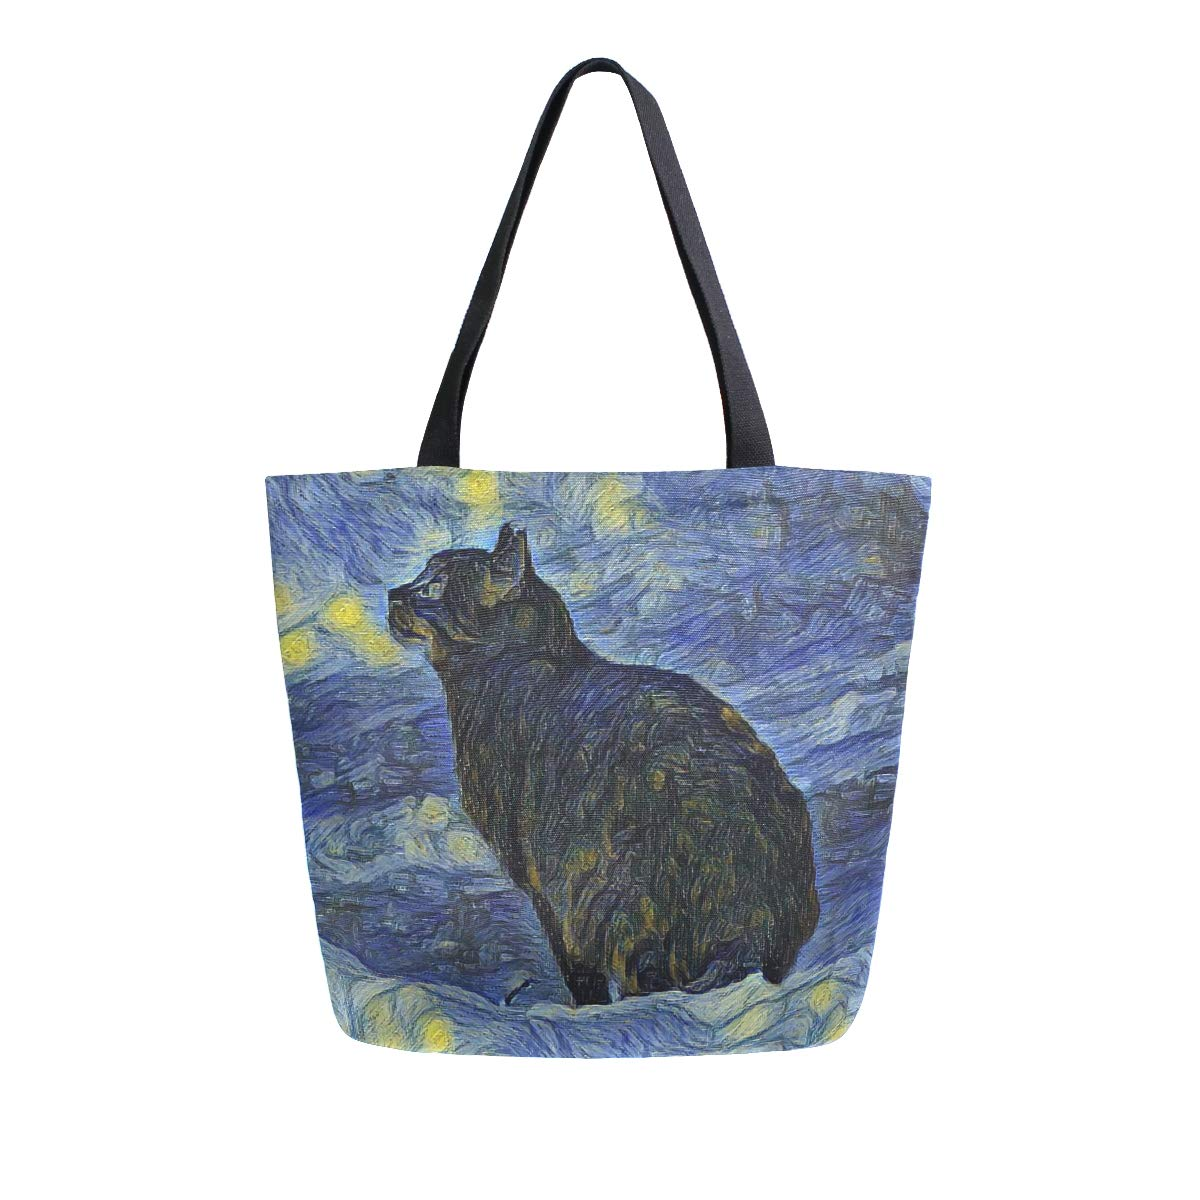 Naanle Van Gogh Canvas Tote Bag Large Women Casual Shoulder Bag Handbag, Oil Painting Galaxy Cat Reusable Multipurpose Heavy Duty Shopping Grocery Cotton Bag for Outdoors.